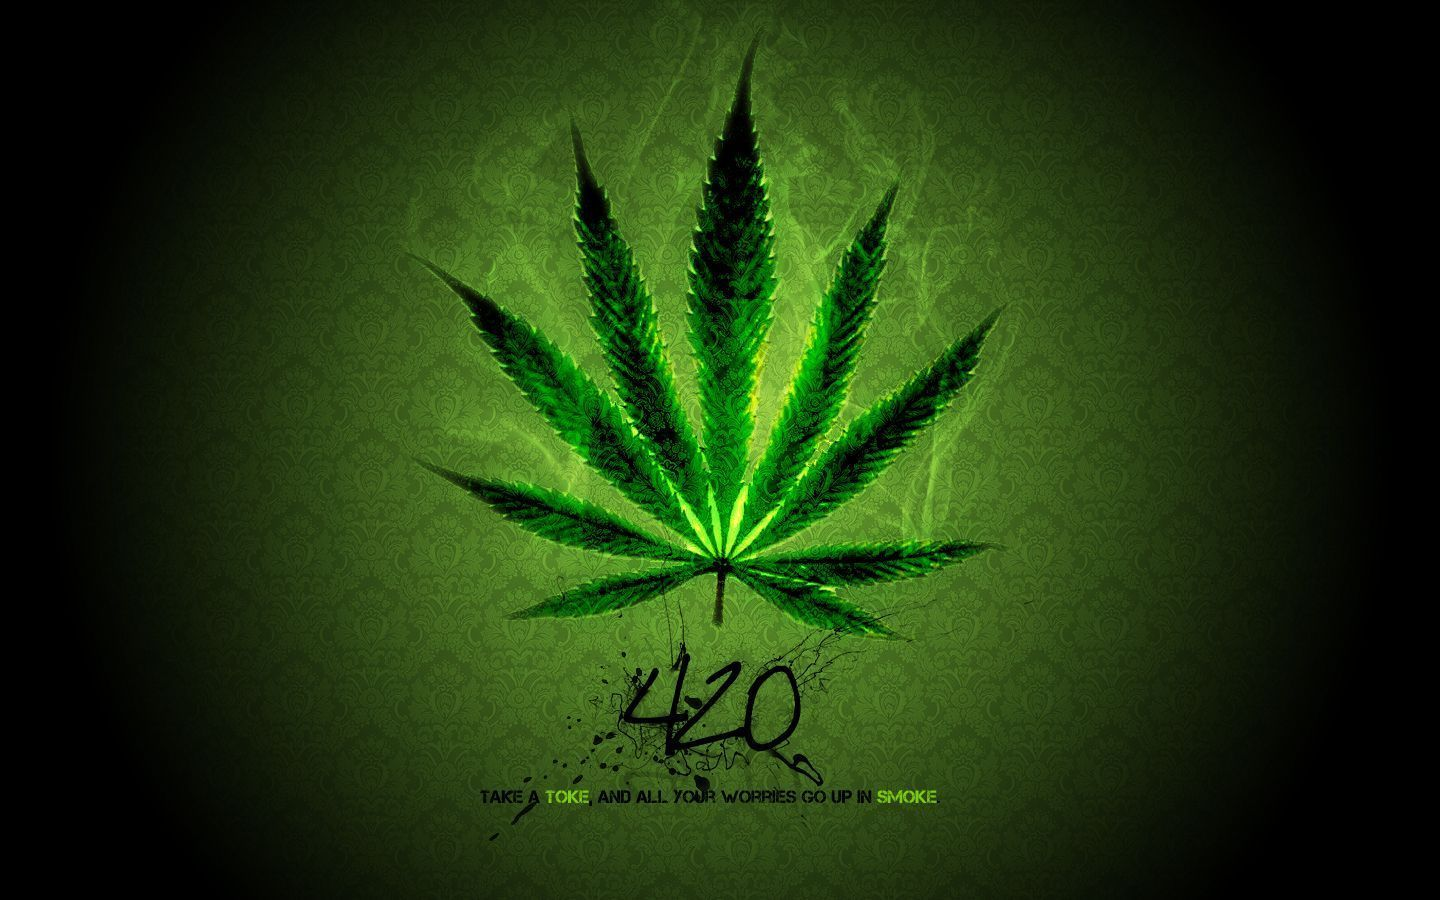 Wallpapers Marijuana